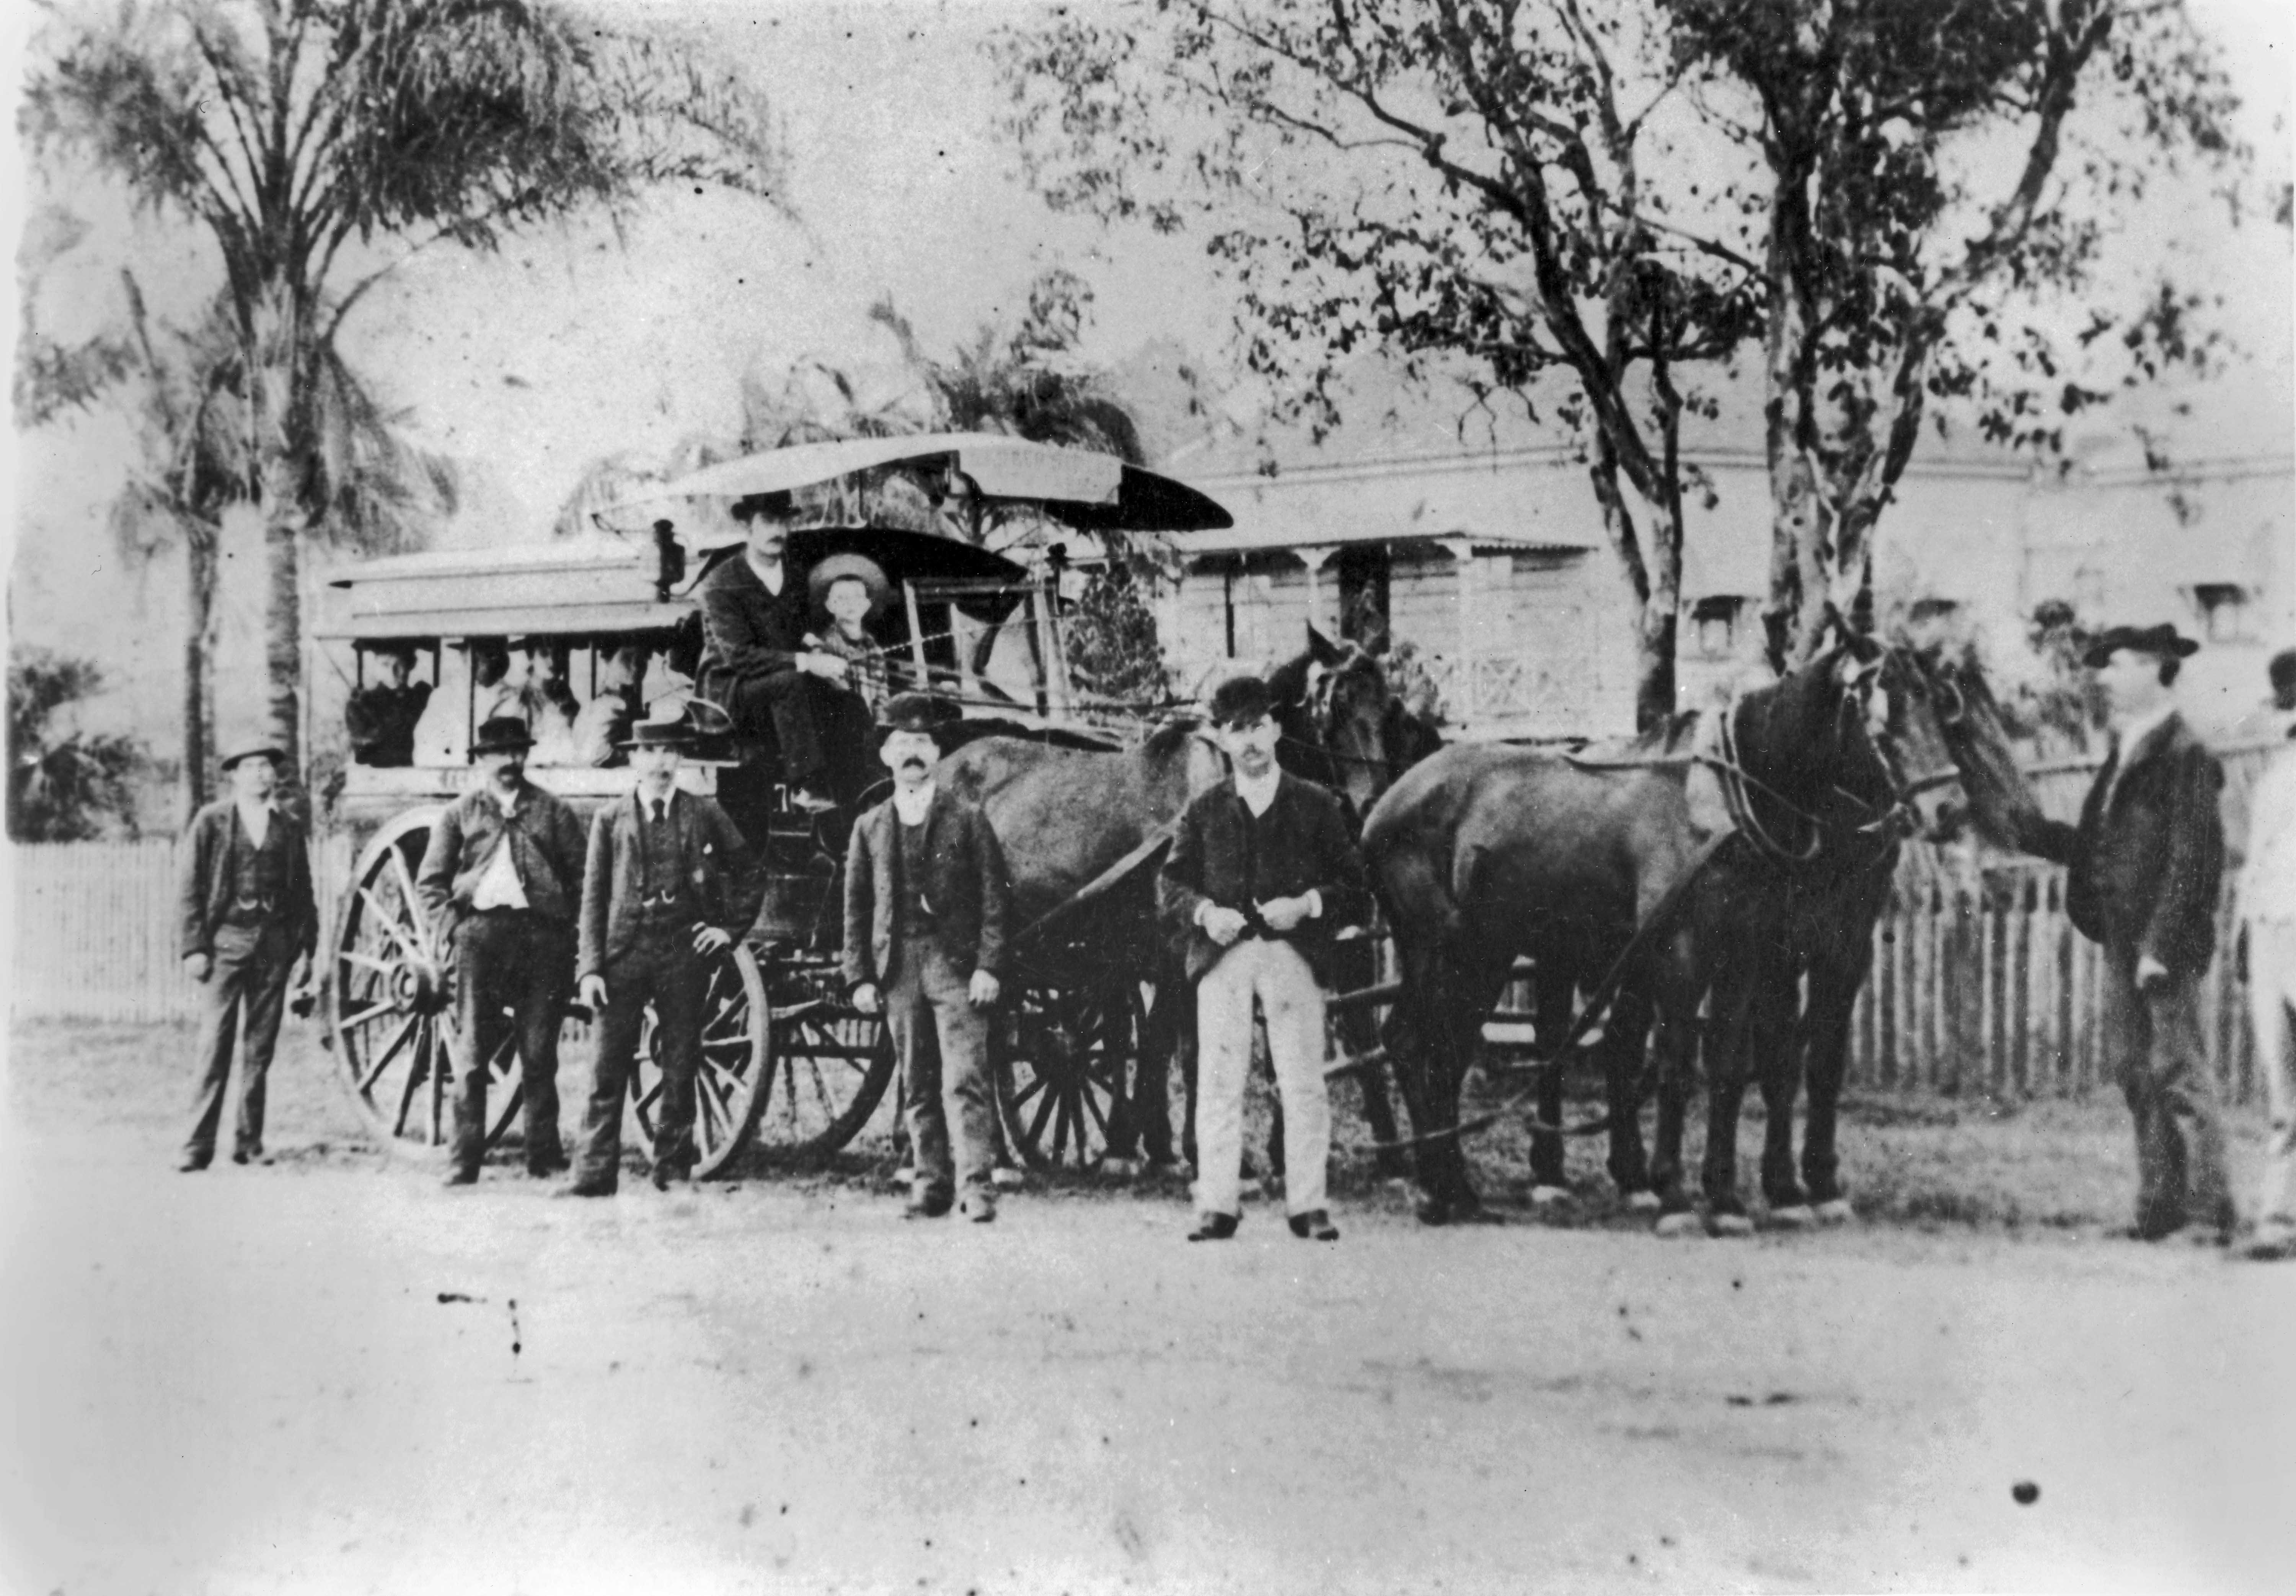 Horse bus owned by John Clark awaiting departure Brisbane 1890s dutton park